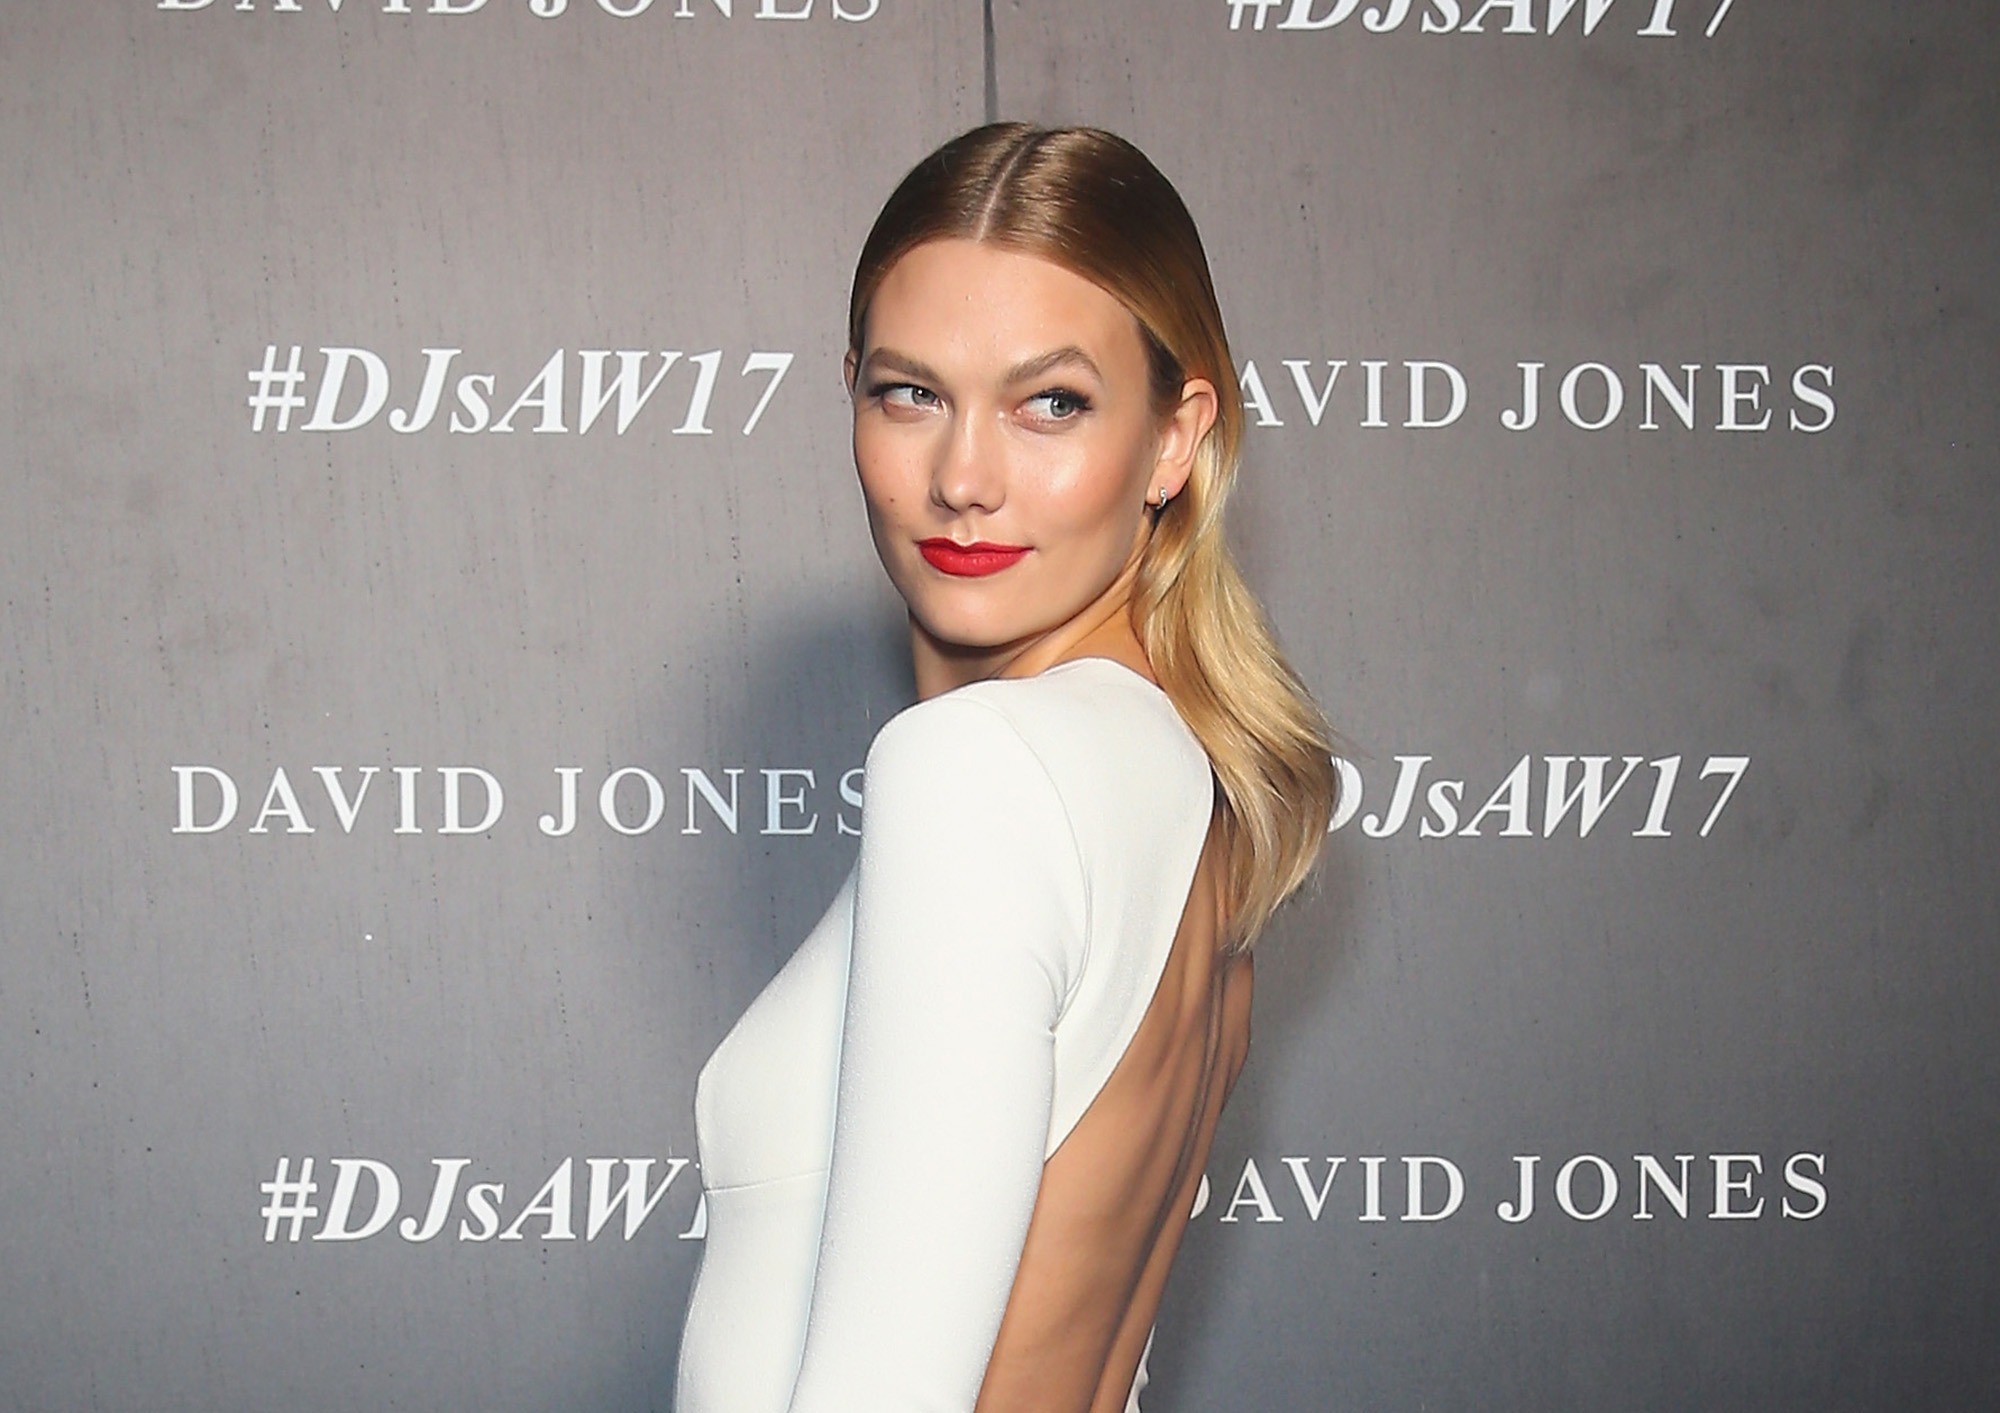 Karlie Kloss arrives ahead of the David Jones Autumn Winter 2017 Collections Launch on February 1, 2017 in Sydney, Australia.